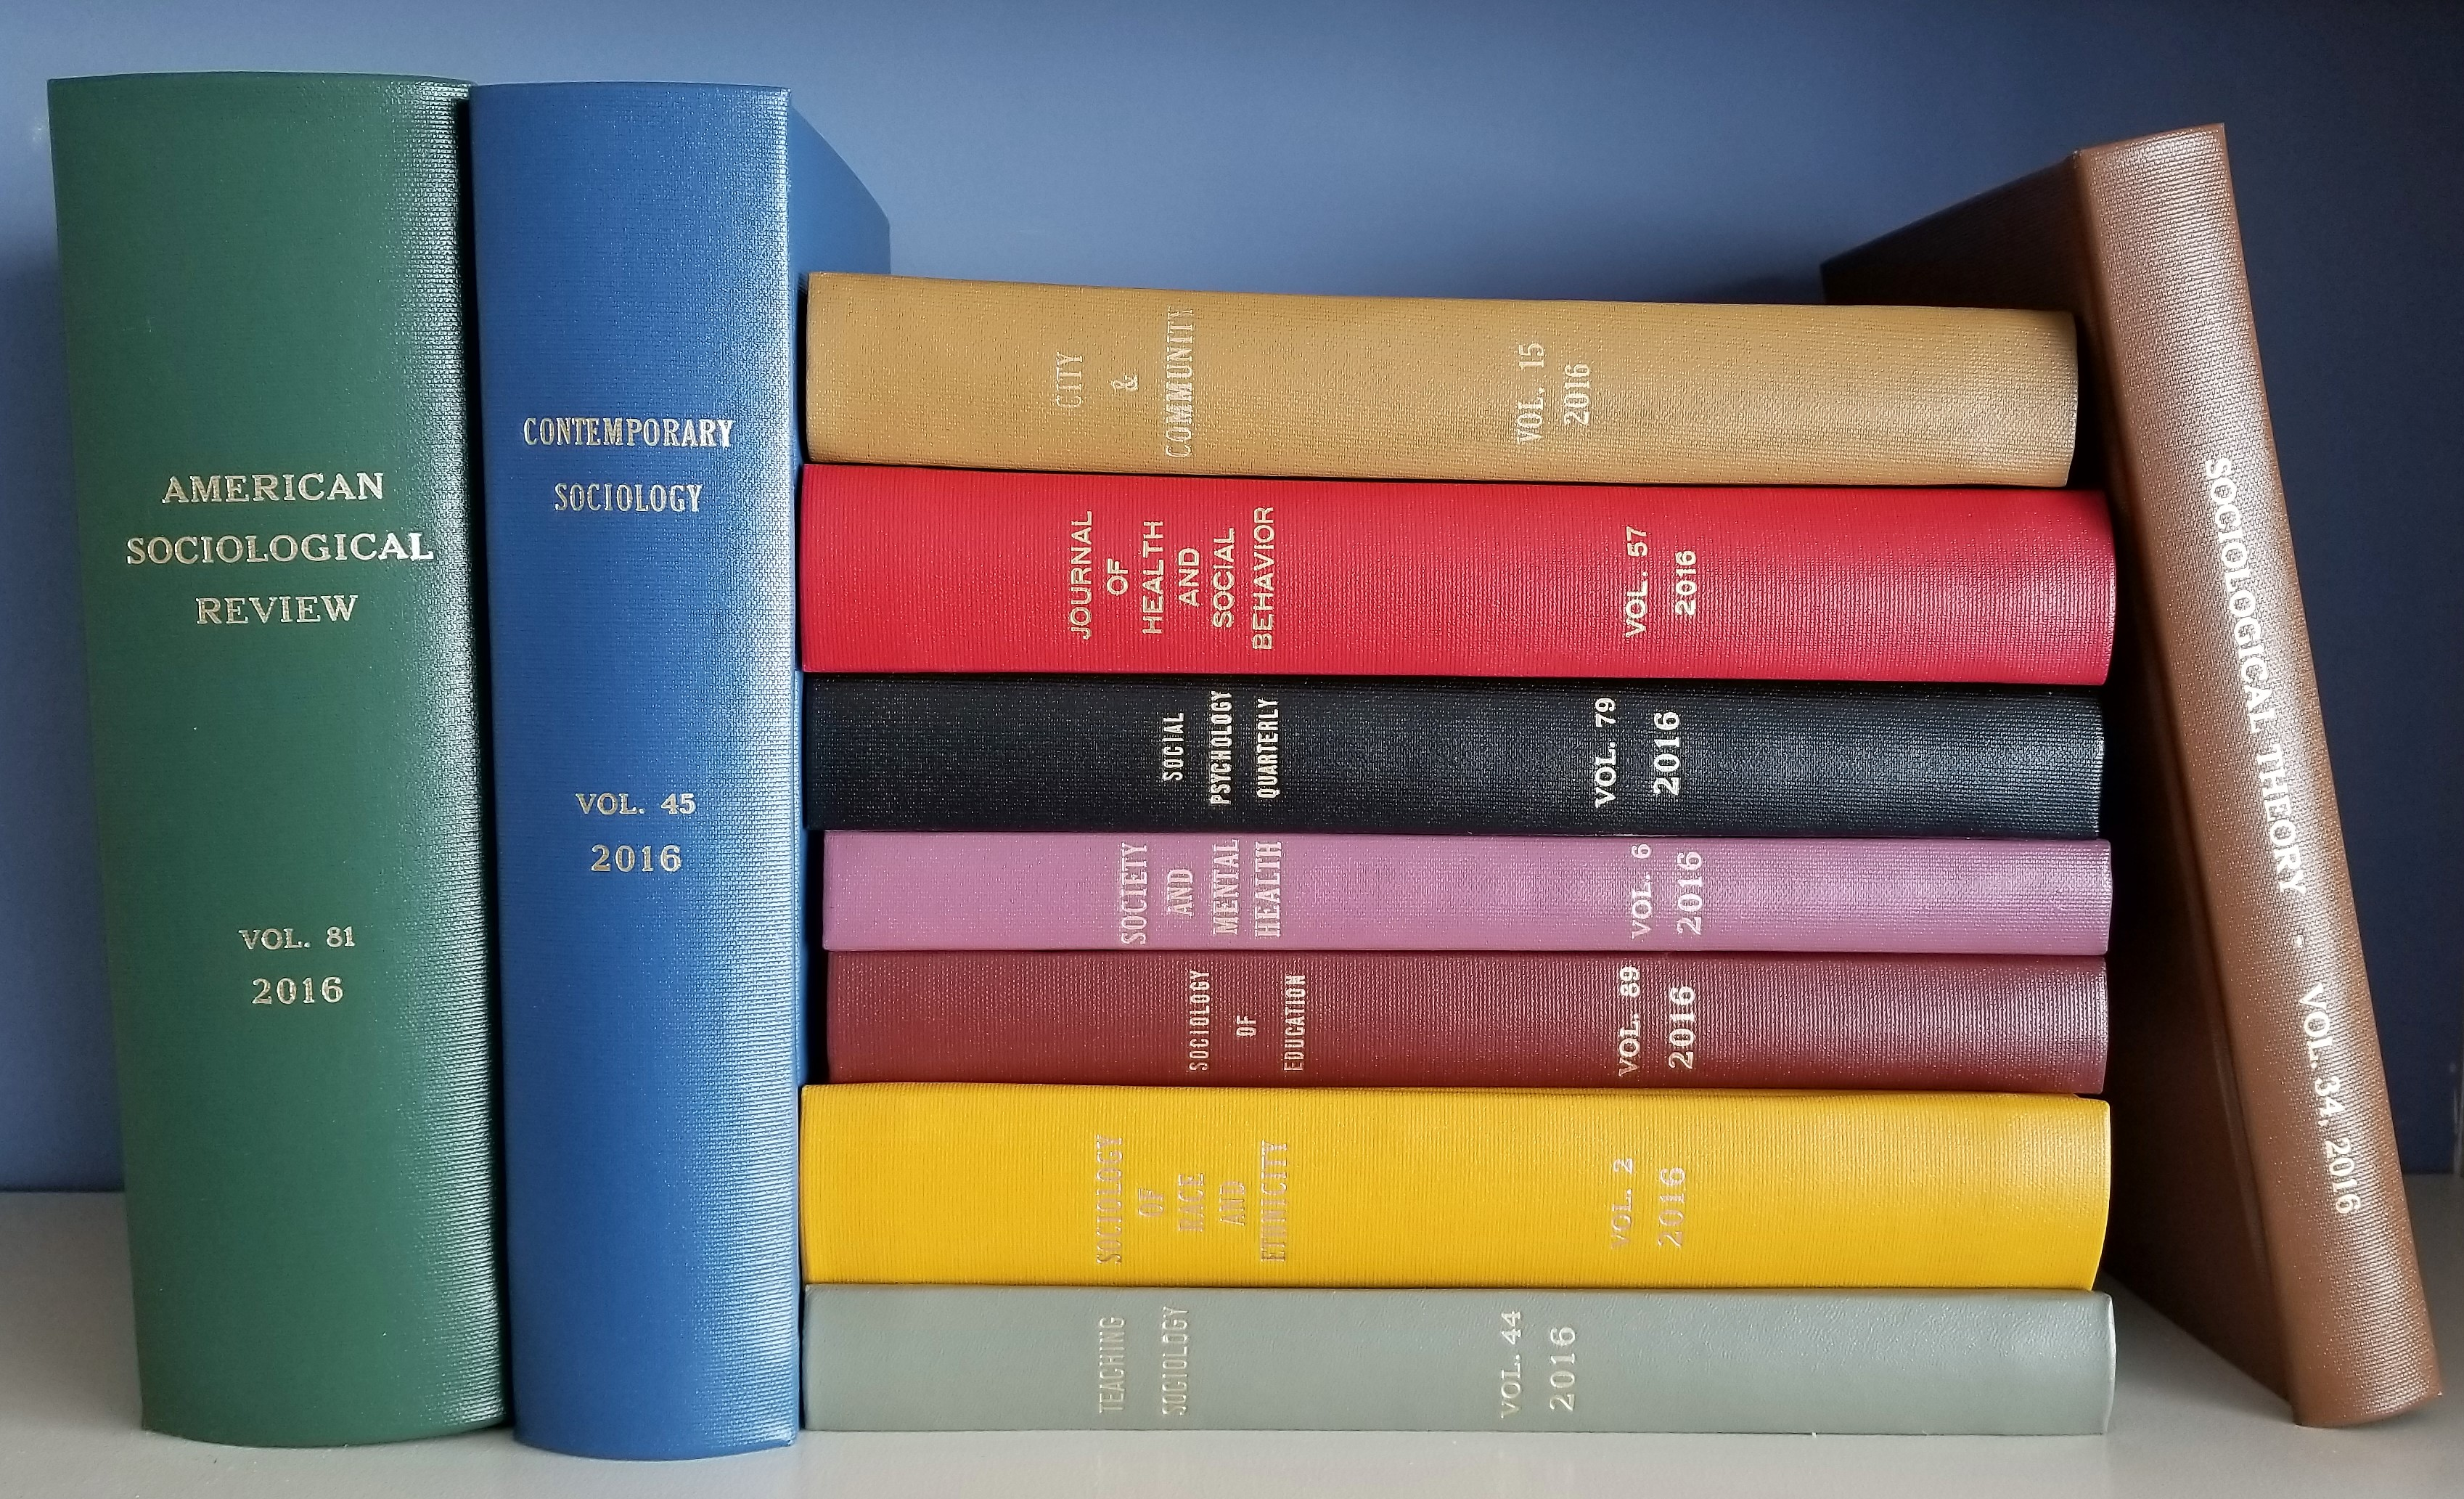 Spines of ASA bound journals stacked and leaning against each other on a white shlef witha blue background.